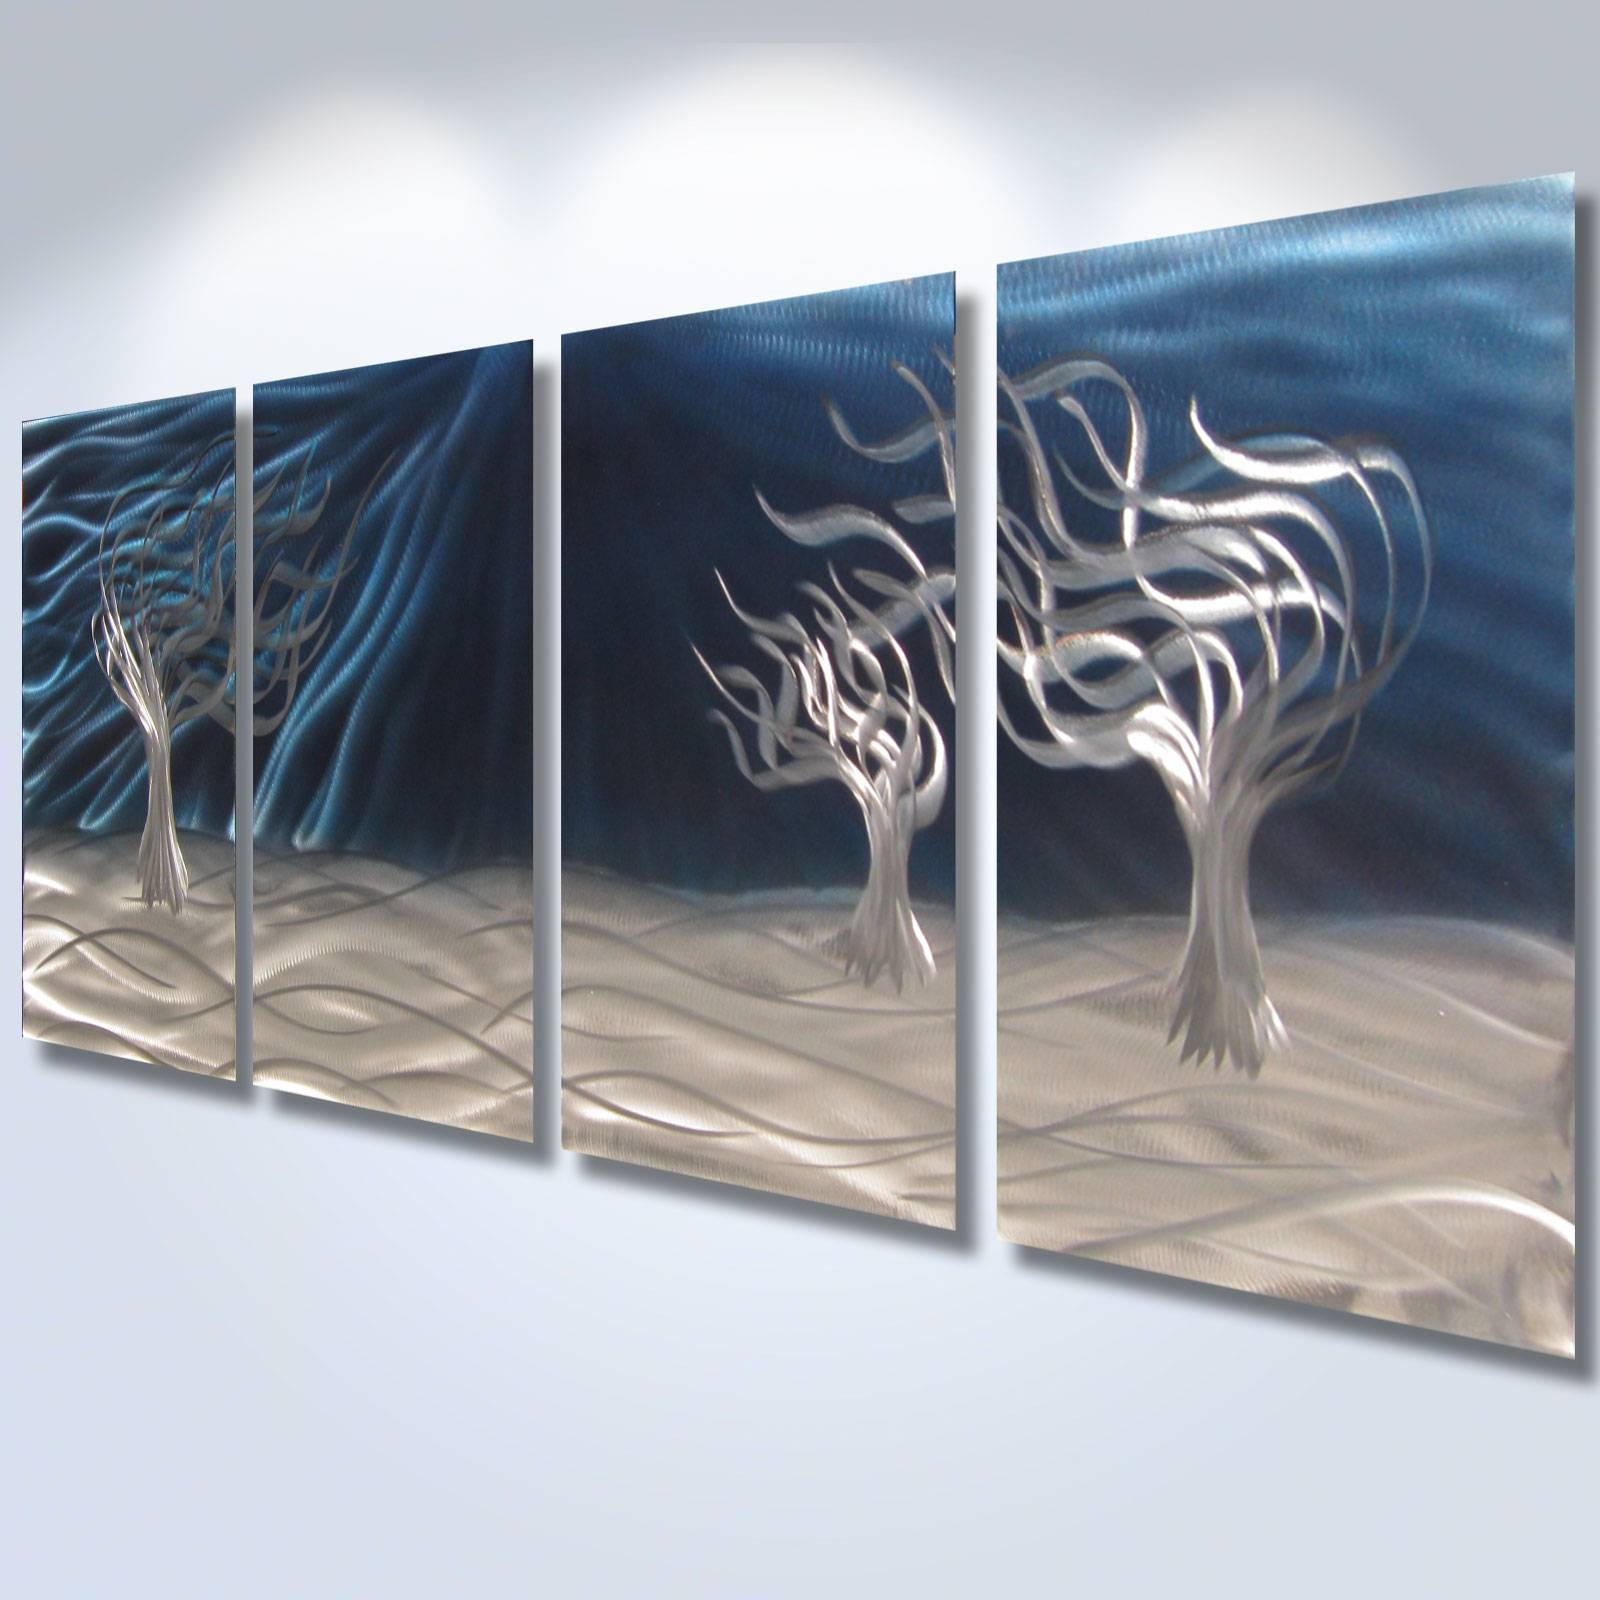 3 Trees Blue – Abstract Metal Wall Art Contemporary Modern Decor Regarding Current Modern Metal Wall Art (View 1 of 20)